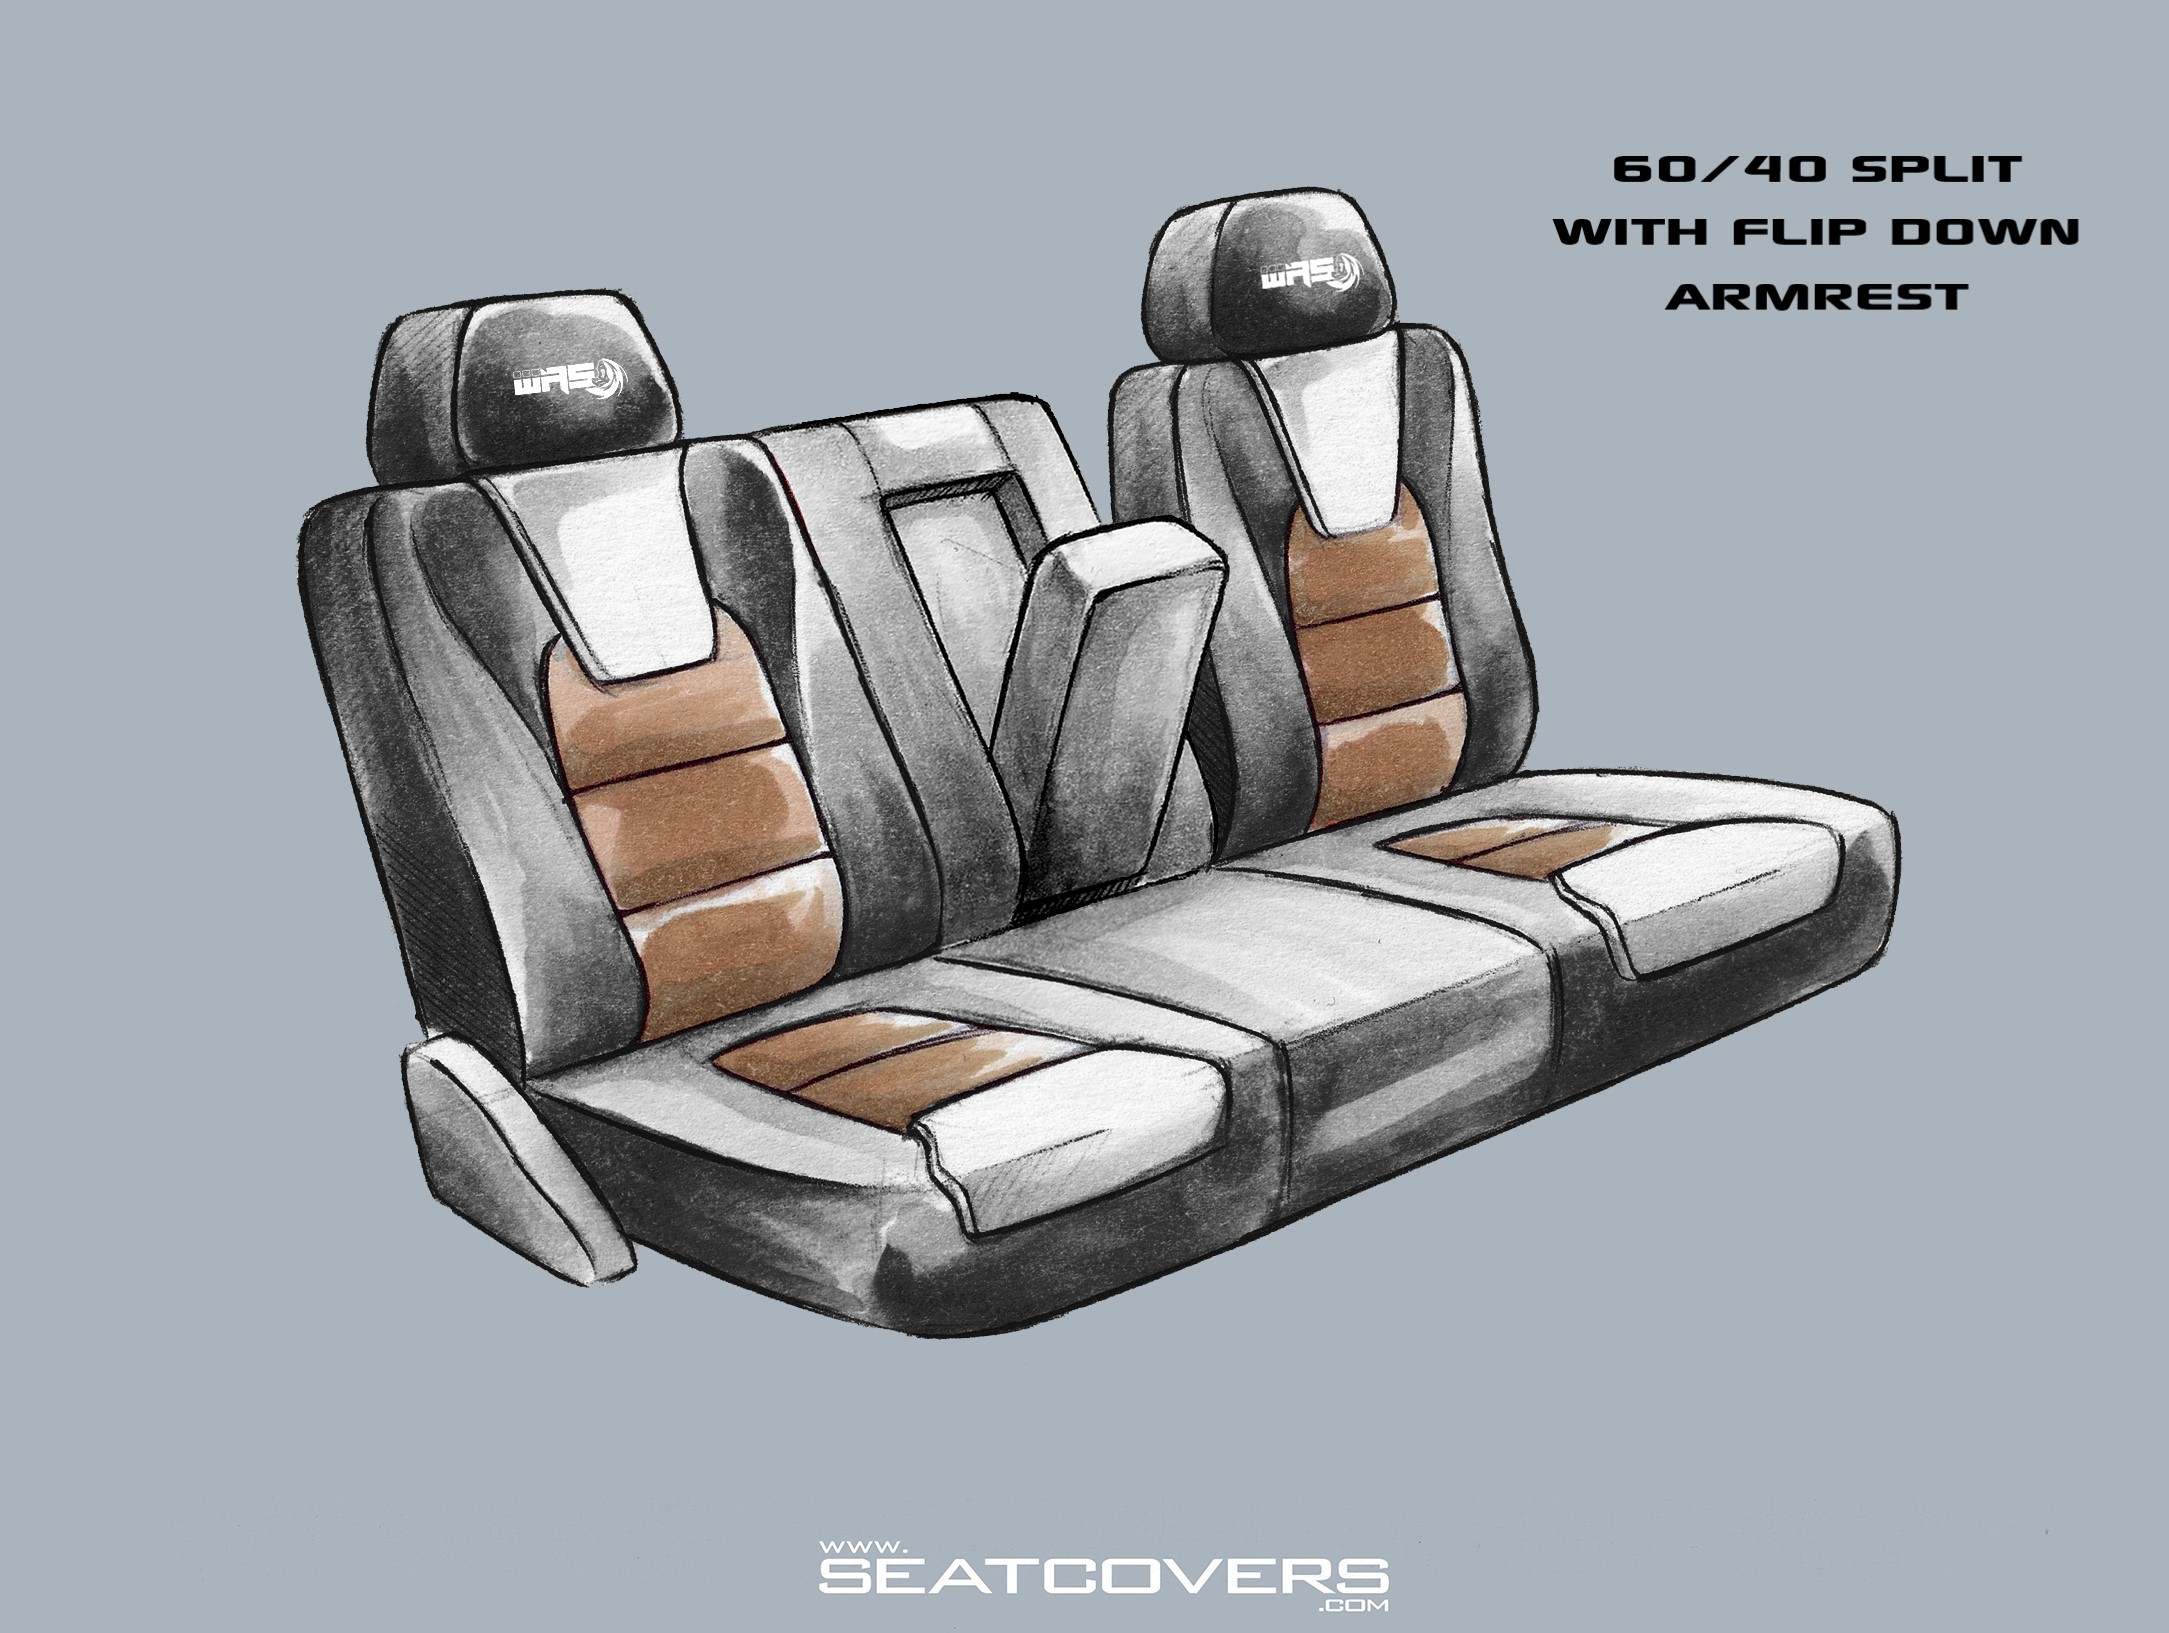 Jeep Wrangler seat covers 60:40 rear seats seatcovers.com